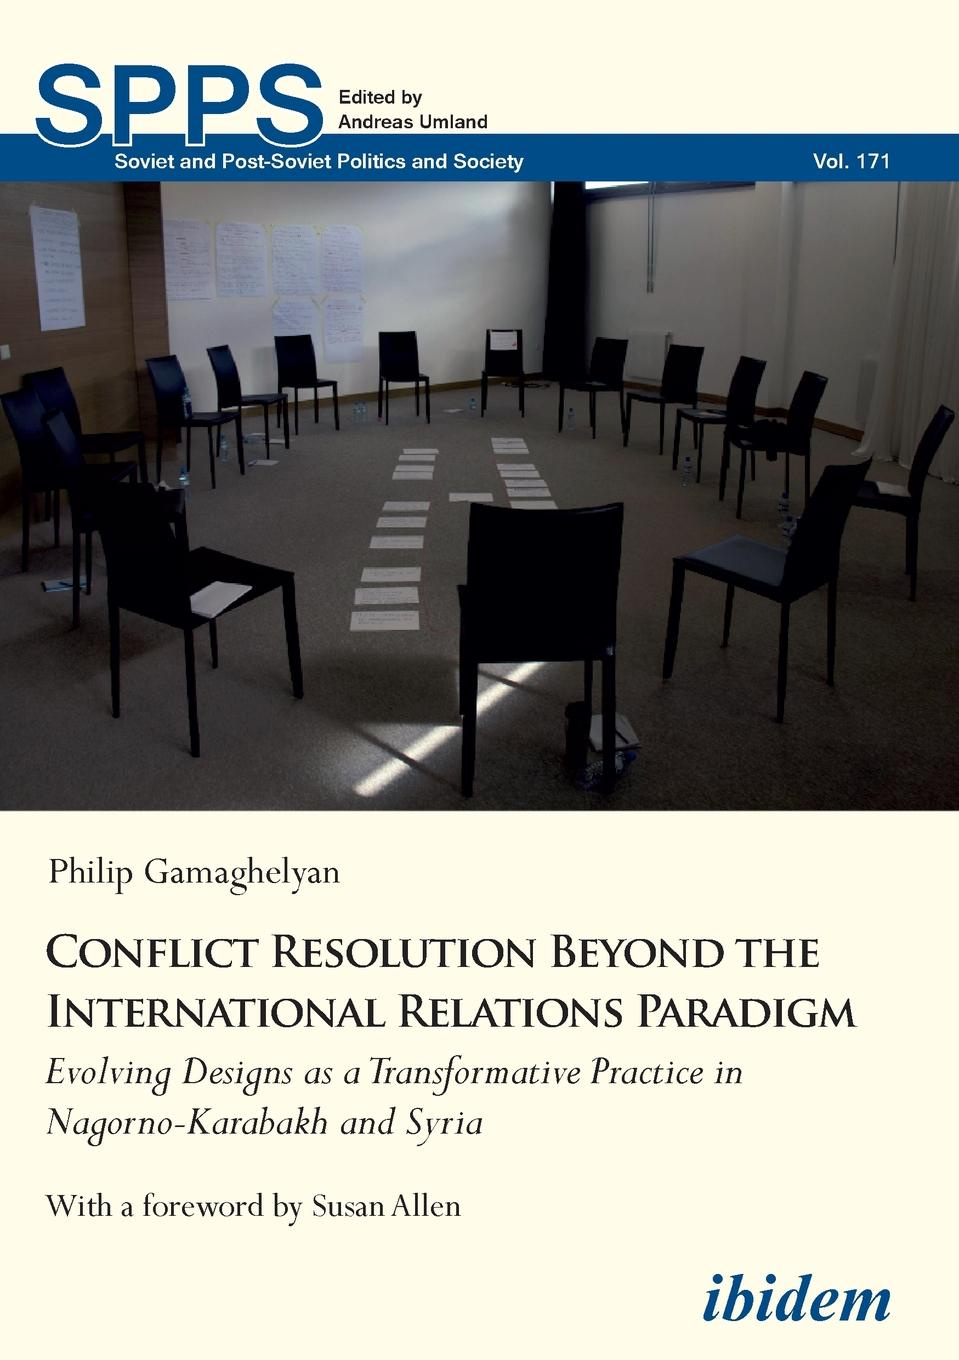 Philip Gamaghelyan Conflict Resolution Beyond the International Relations Paradigm. Evolving Designs as a Transformative Practice in Nagorno-Karabakh and Syria the eu s capacity for conflict resolution